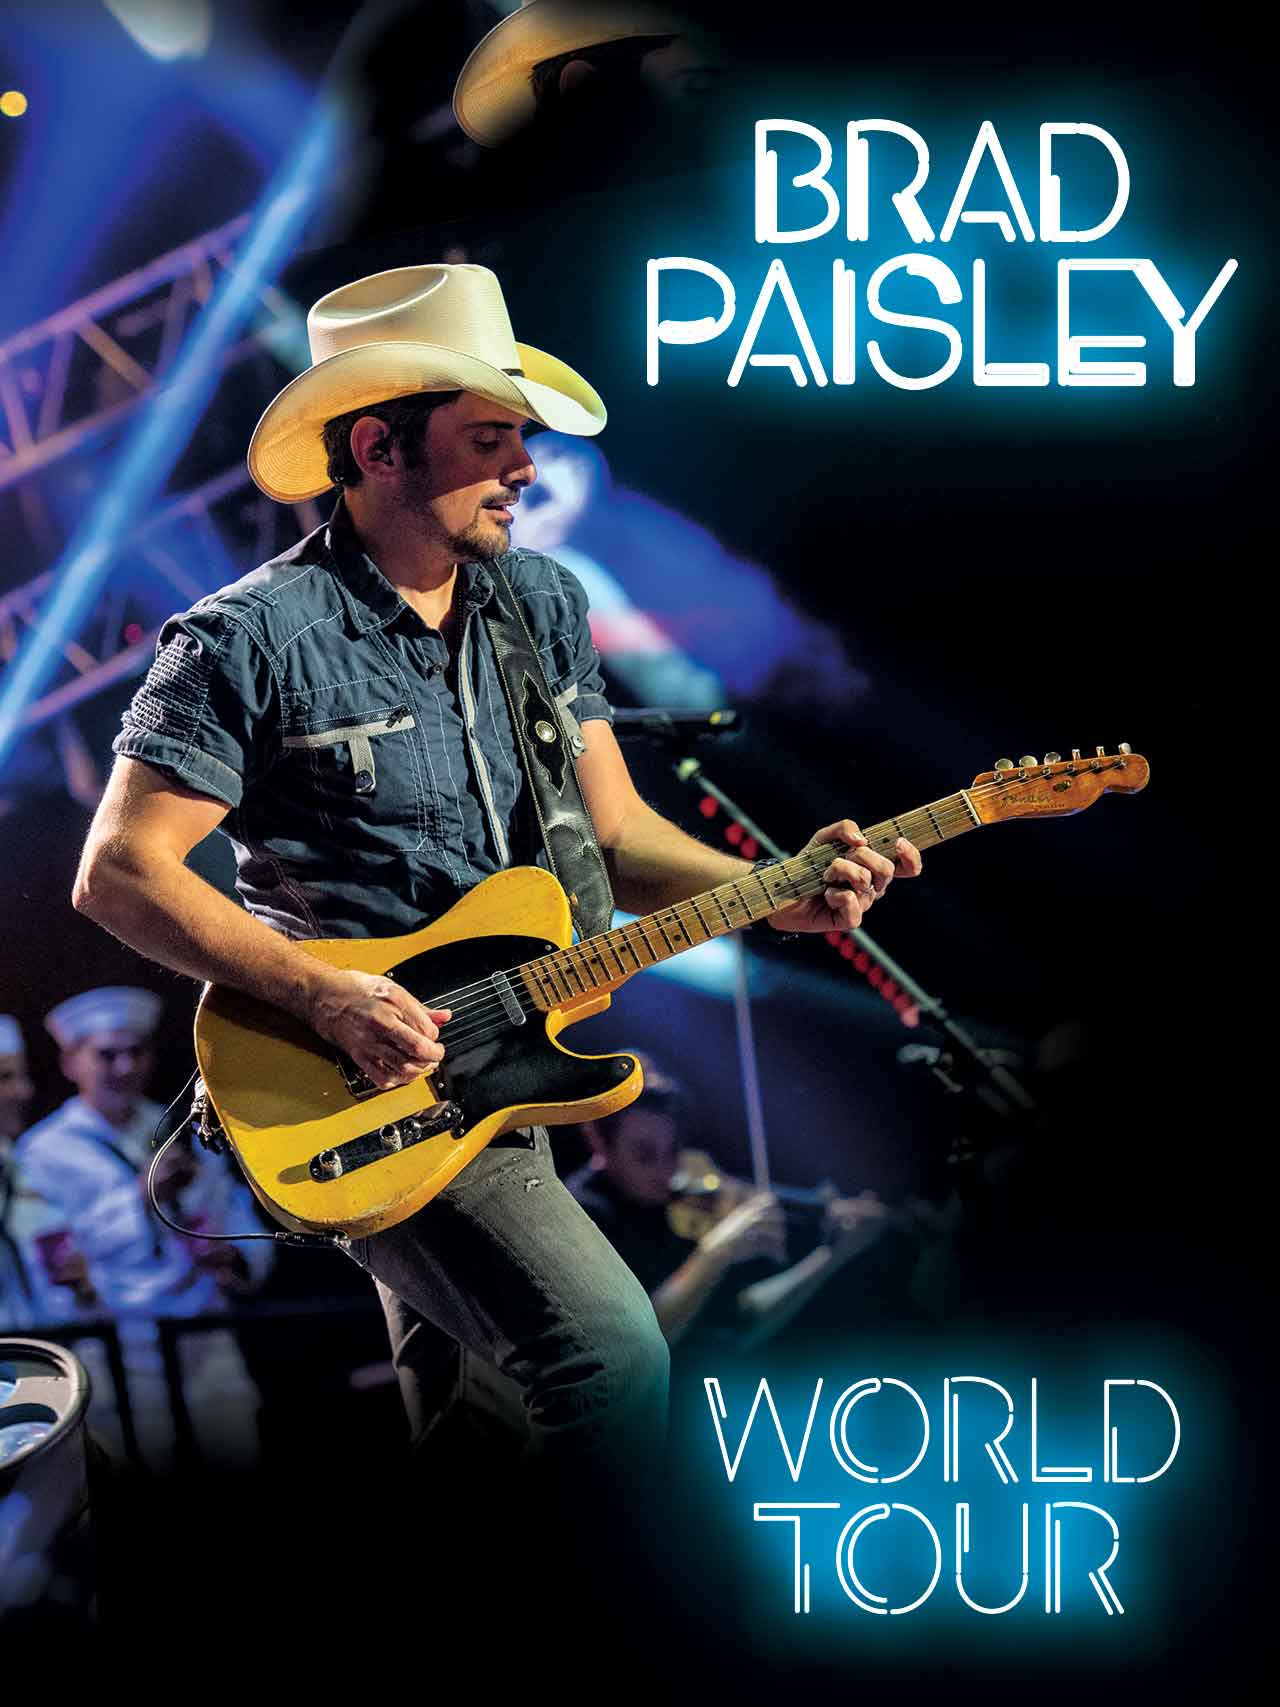 Brad Paisley World Tour 2020